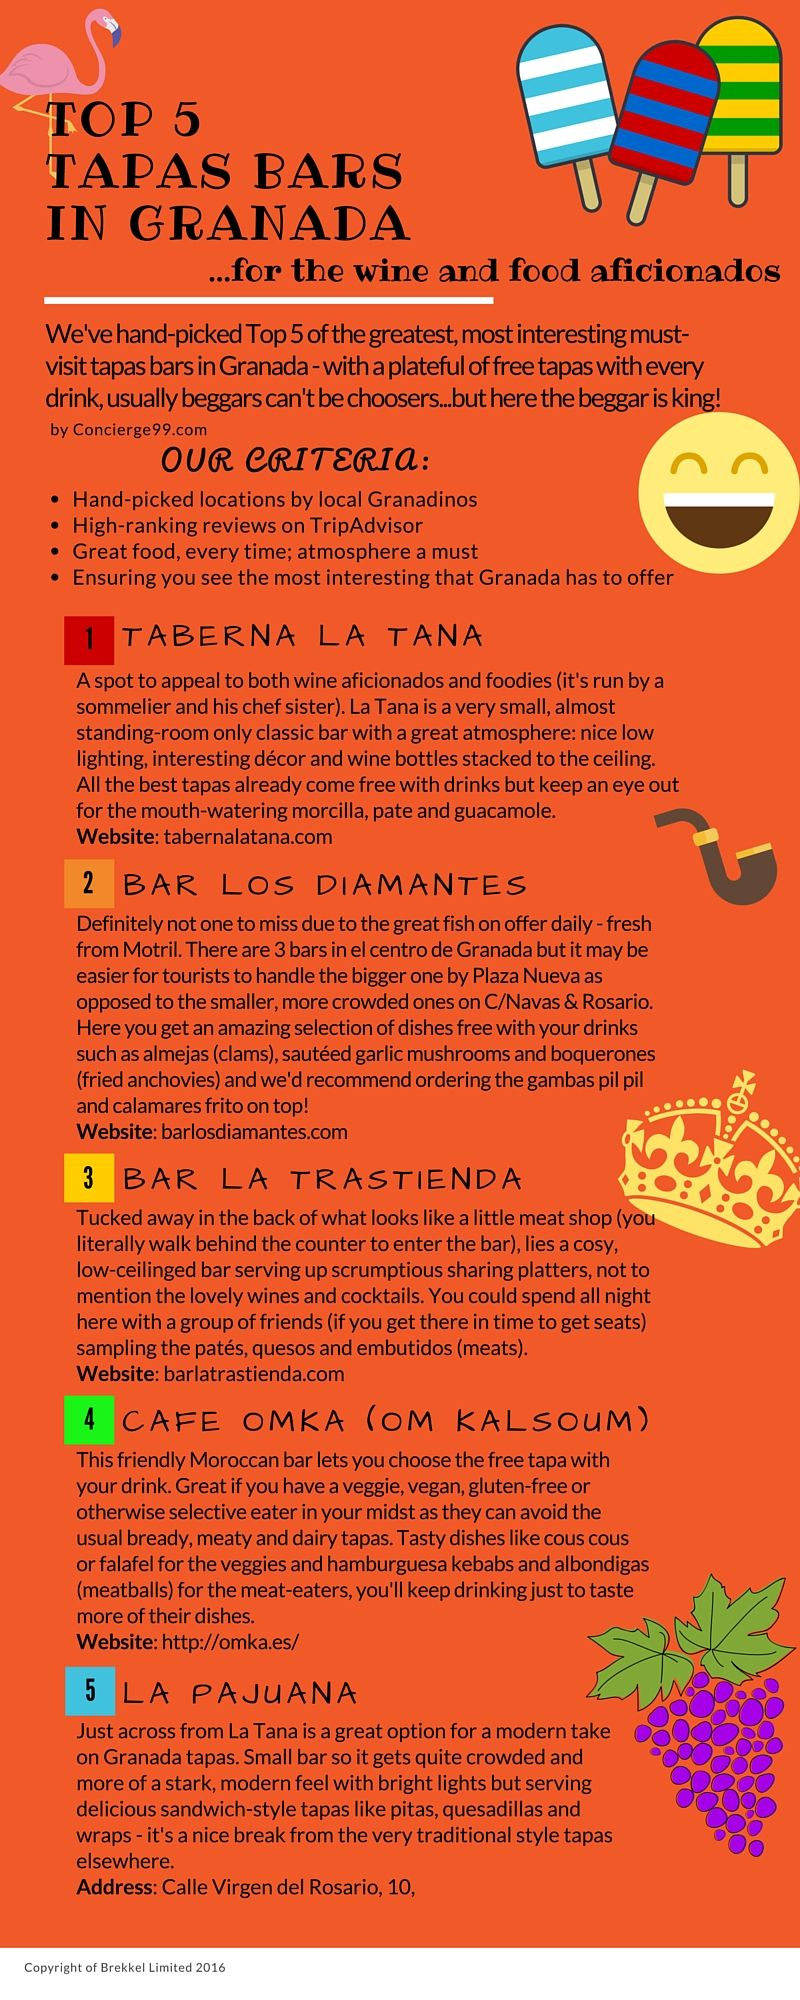 Top5 Best Tapas Bars In Granada Spain Where To Go For Delicious Free Tapas Well Included With Your Drink Granada Granada Spain Best Tapas